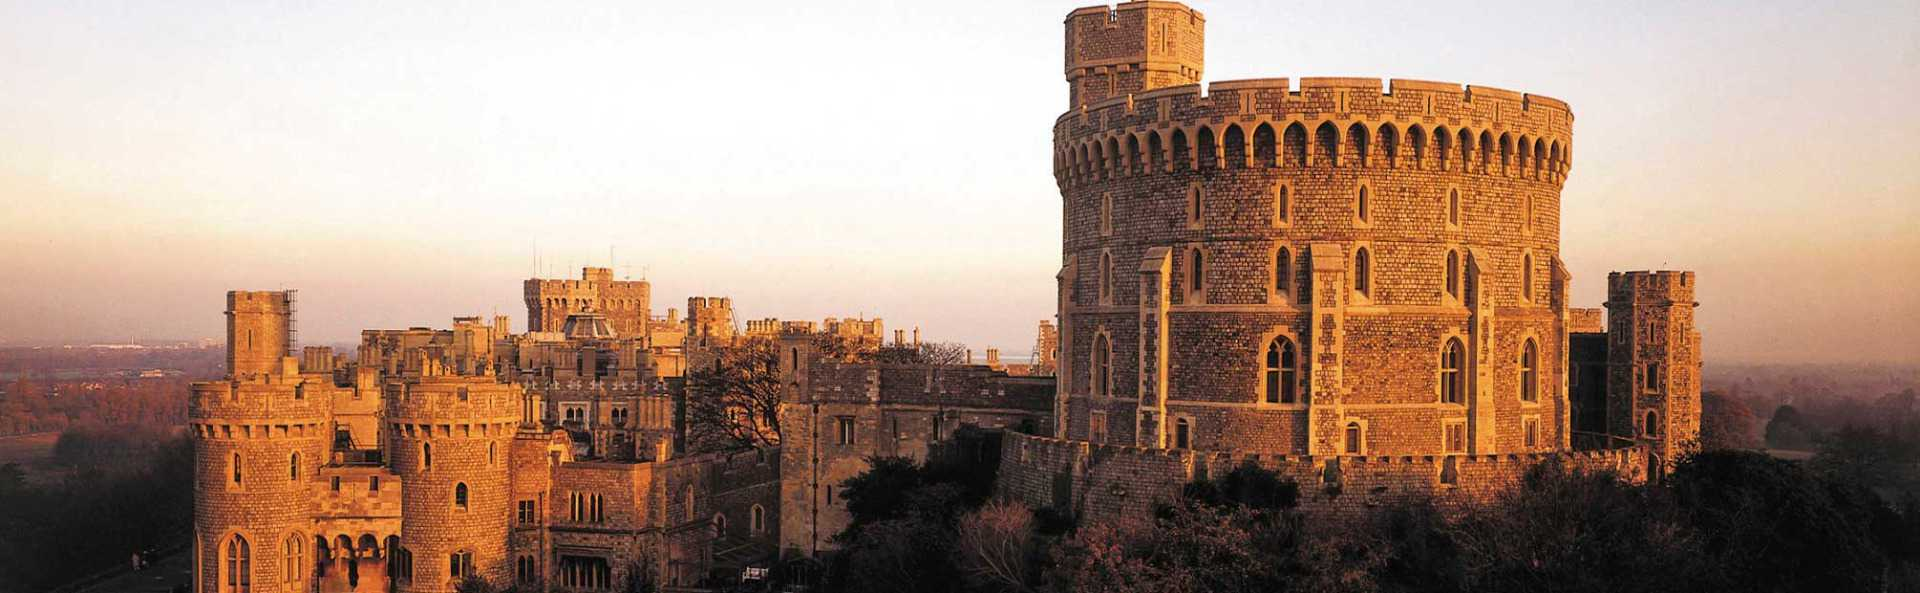 Windsor Castle Front Outside